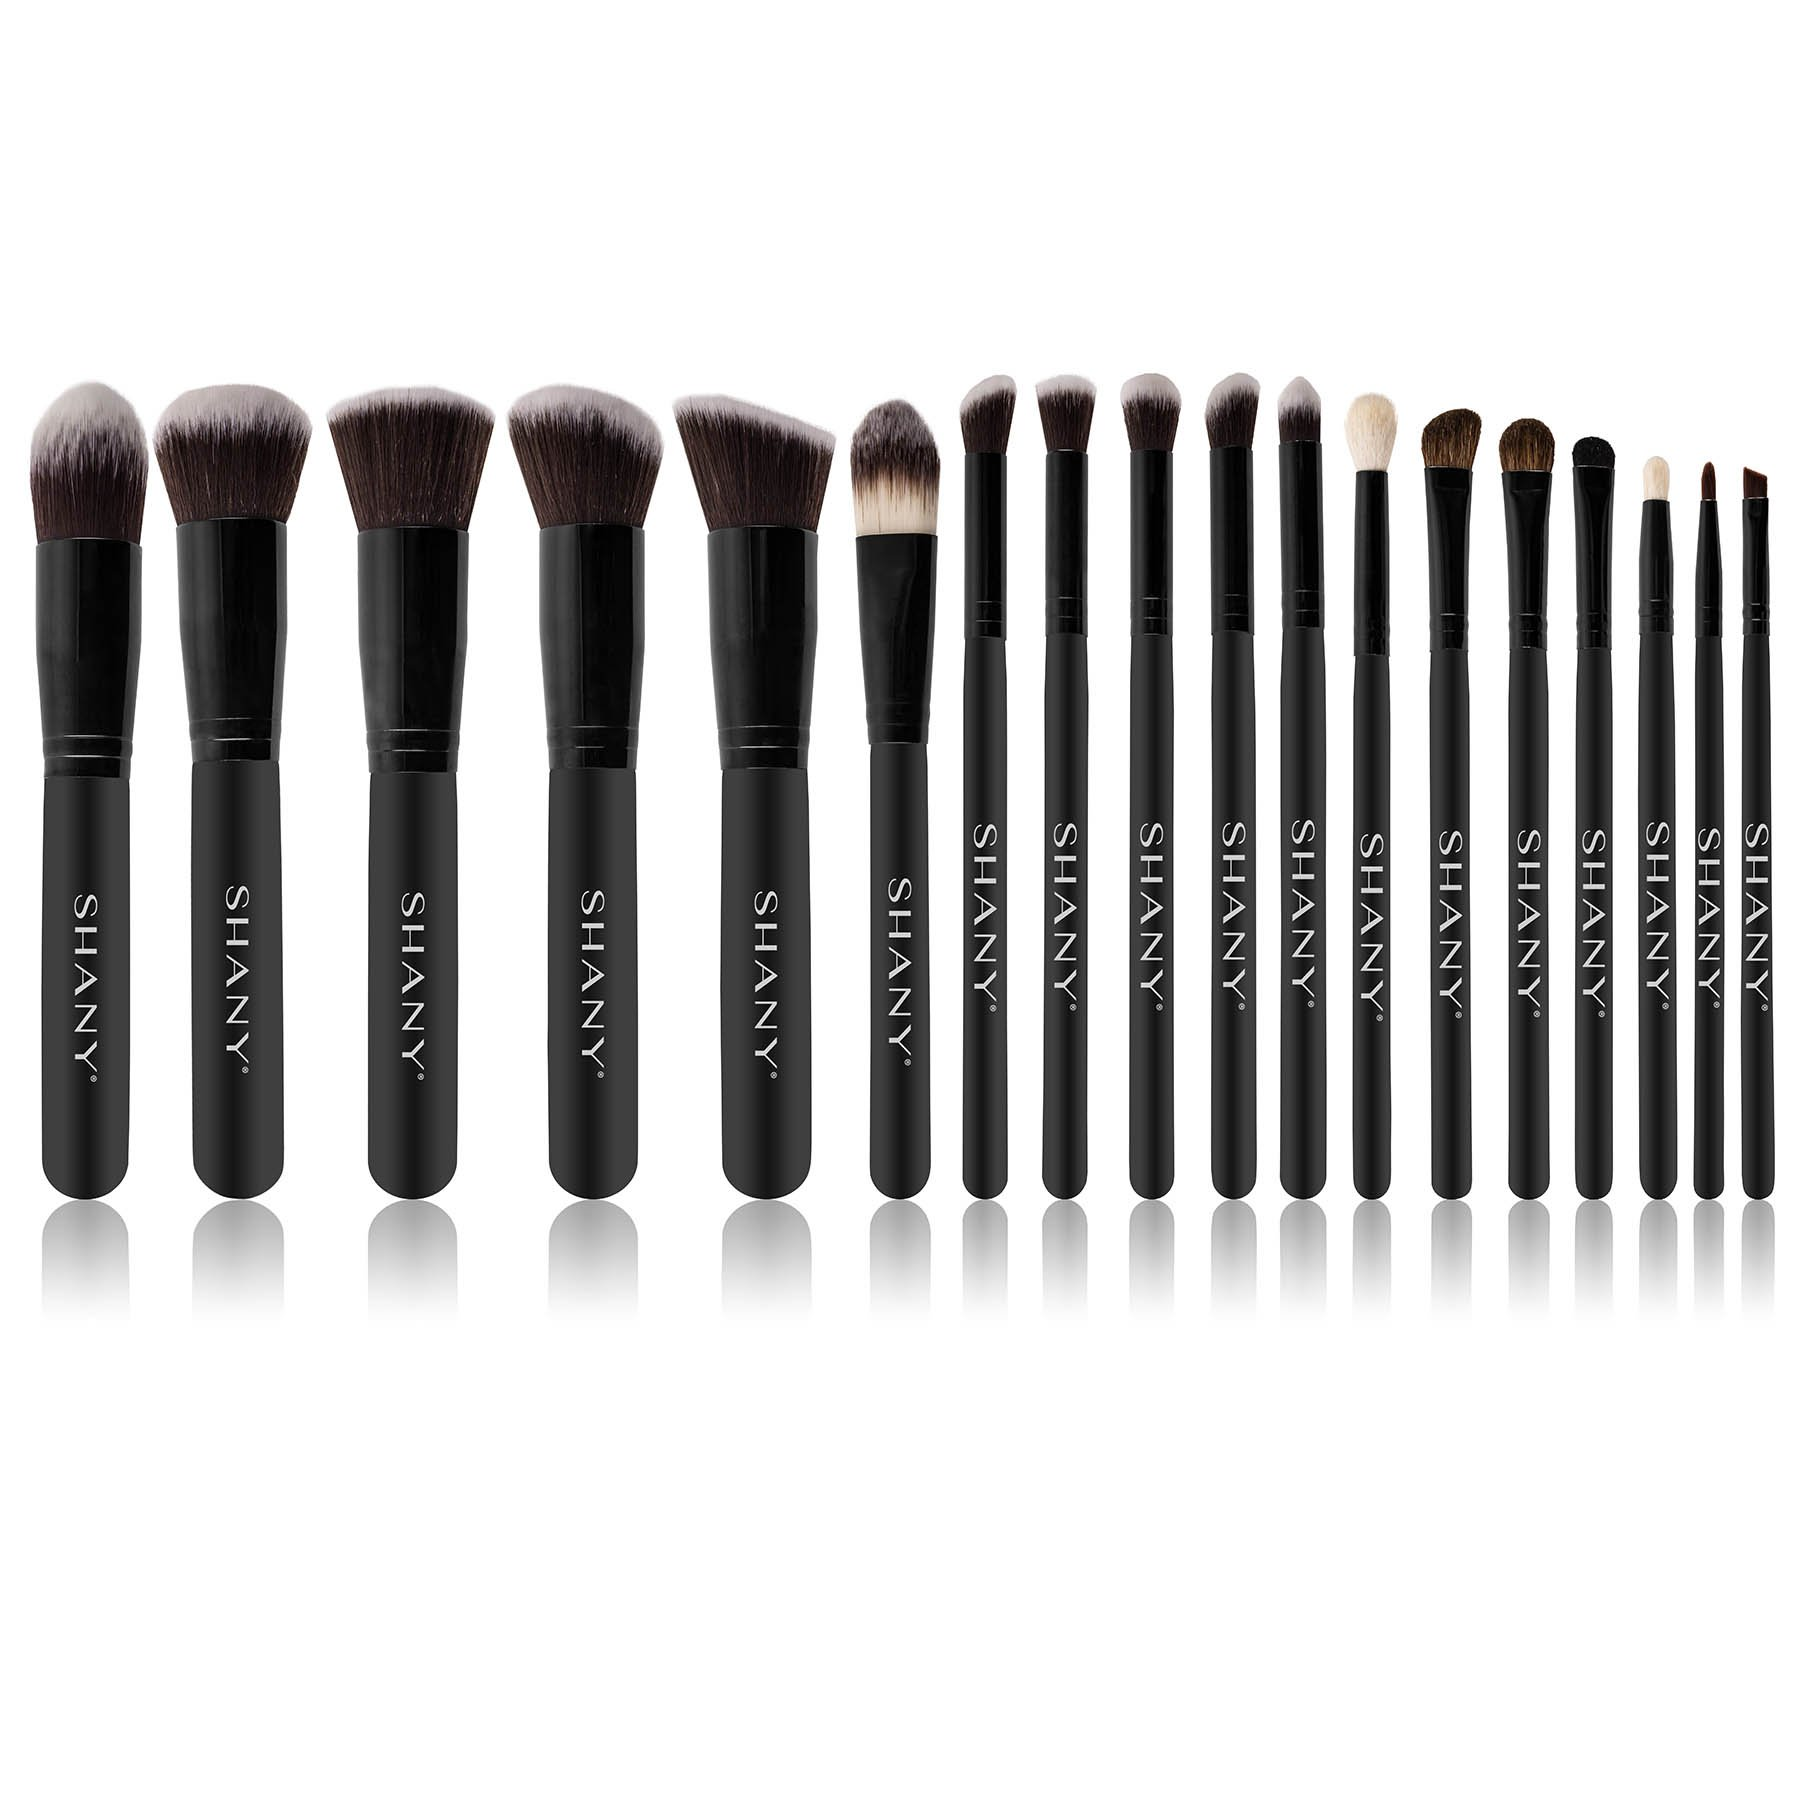 SHANY Artisan's Easel 18 Piece Elite Cosmetics Brush Collection, Black by SHANY Cosmetics (Image #3)